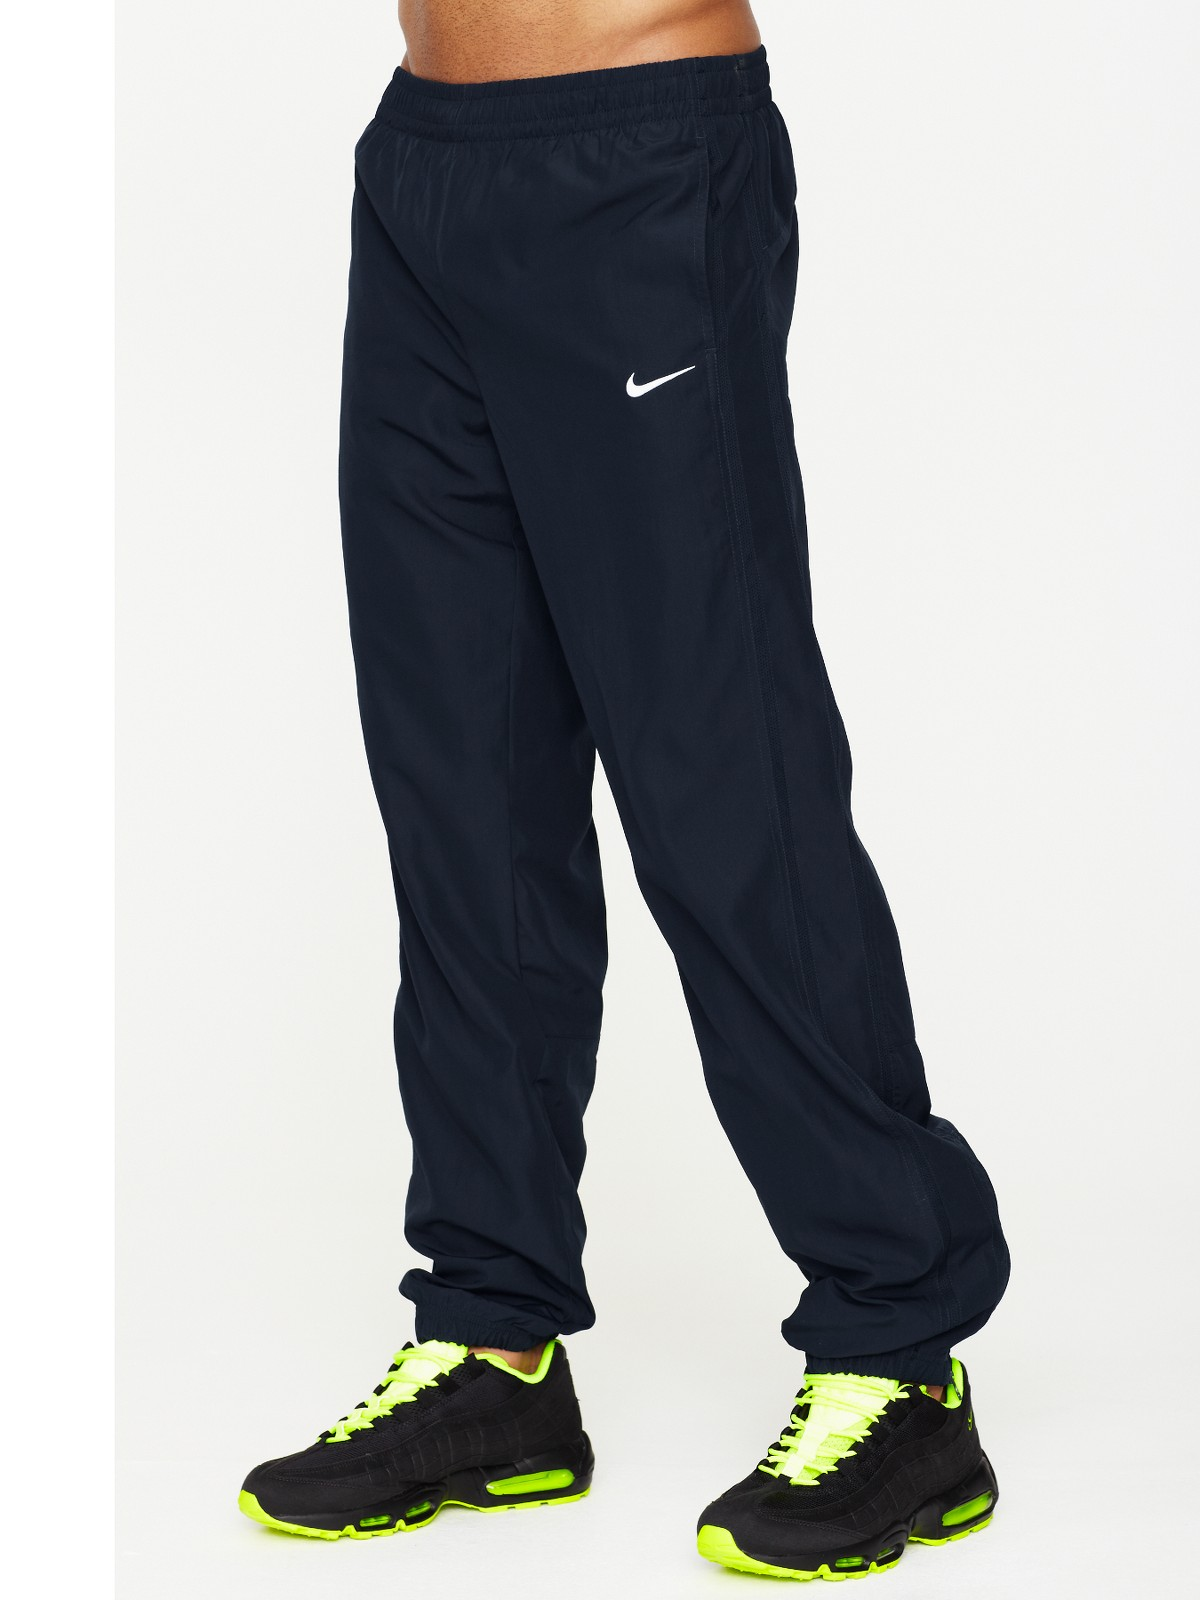 the gallery for gt black nike sweatpants for men